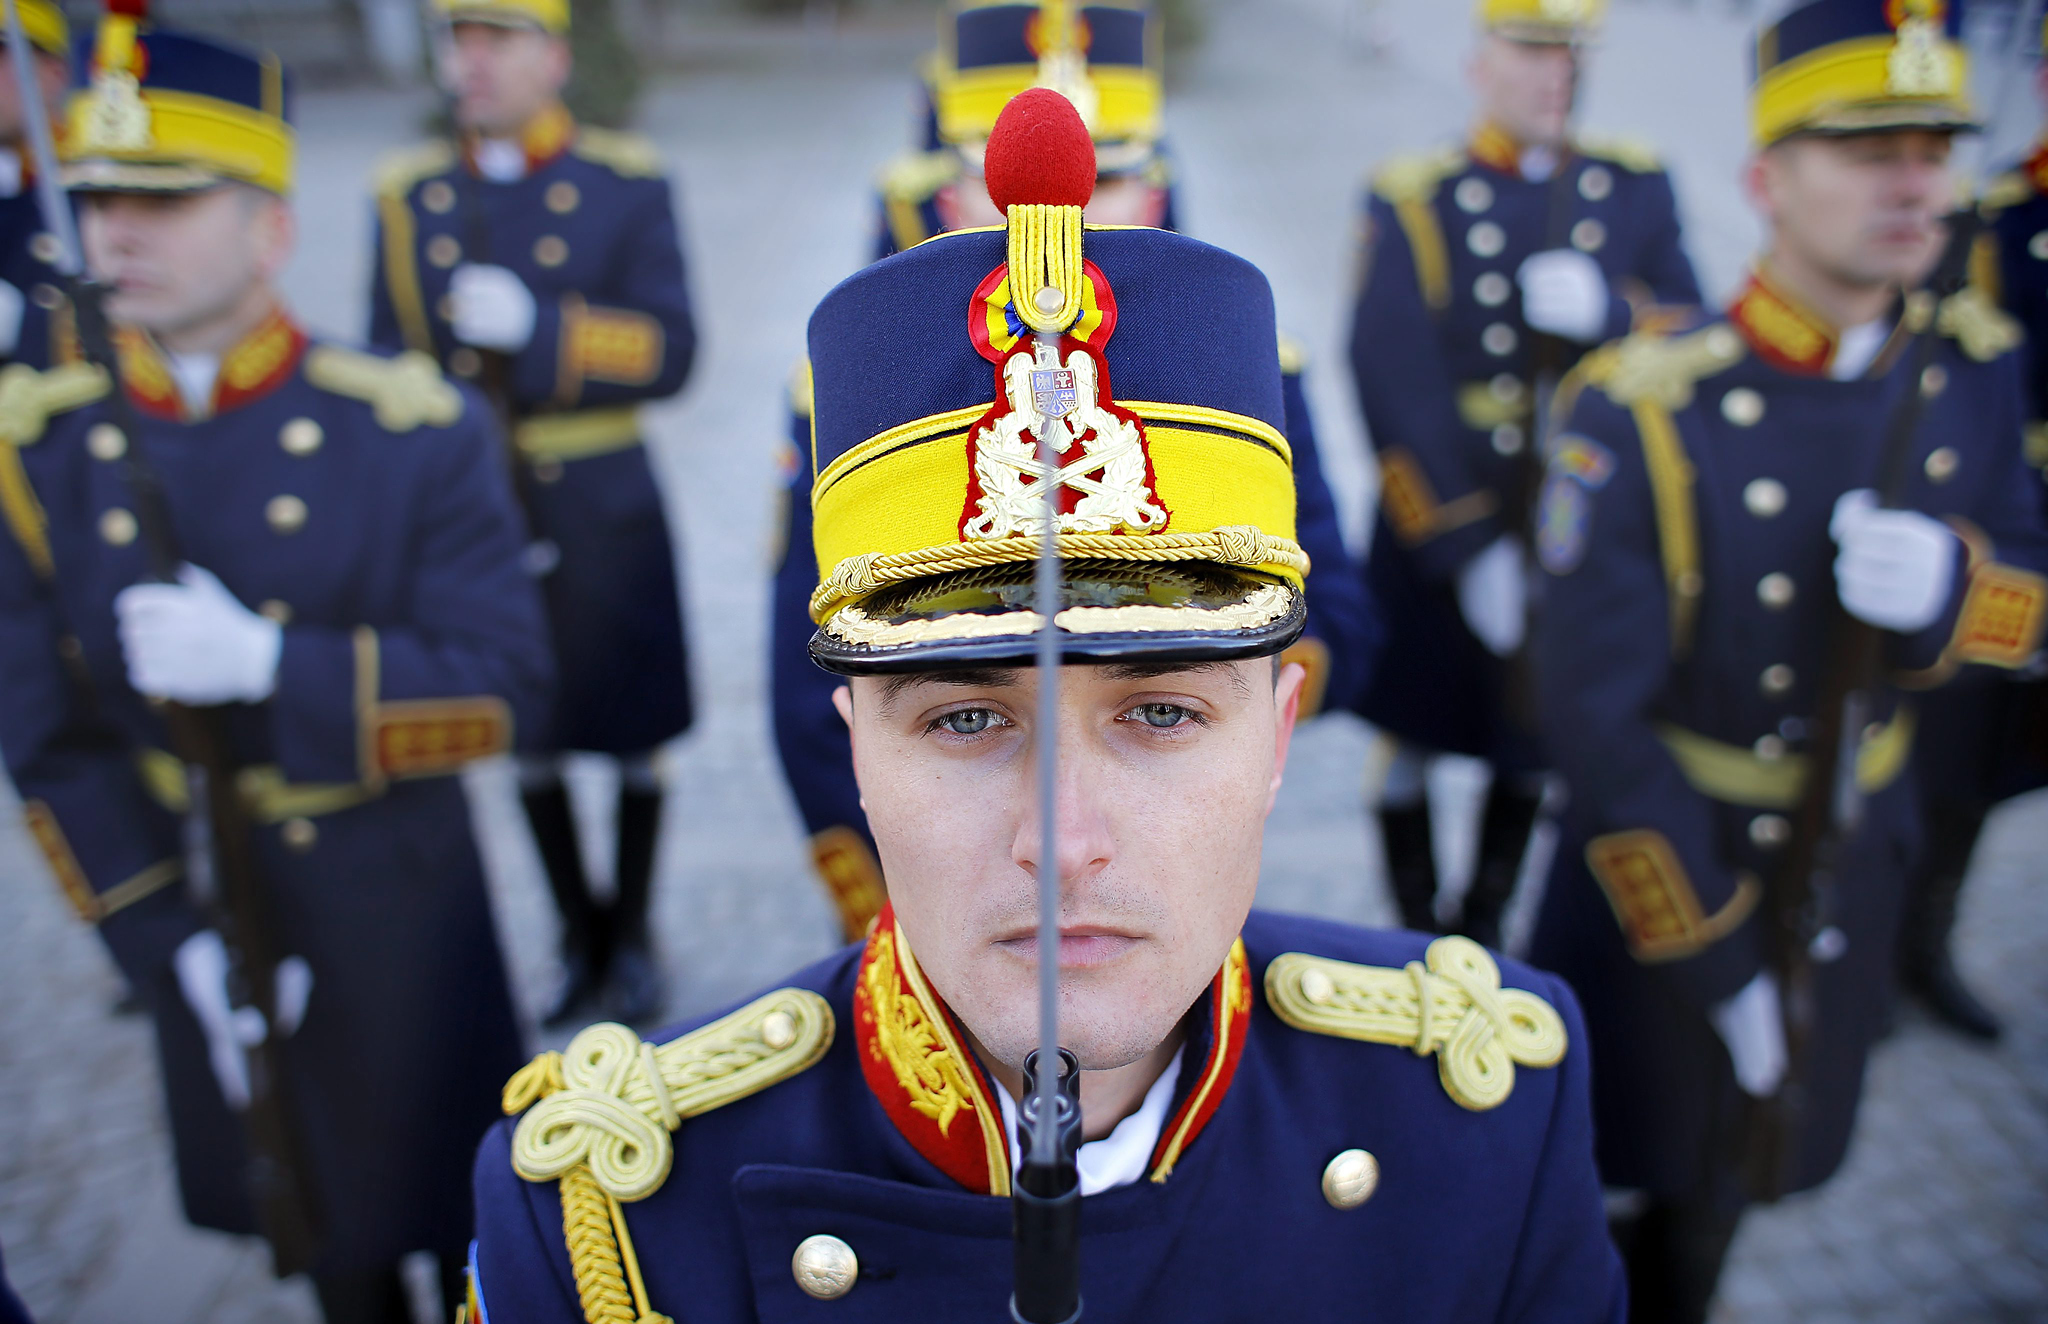 Romanians Commemorate 25th Anniversary of 1989 Revolution...epa04538040 Romanian Honor Guard soldiers pay respects to the victims of the 1989 revolution during a commemoration ceremony held at Heroes of the Revolution Memorial, in central Bucharest, Romania, 22 December 2014. Romanians these days pay their respect to the 1989 activists who took to the streets 25 years ago, taking part at the revolution that toppled Eastern Europe's most repressive communist regime. More than 1,000 people were killed across Romania during clashes between demonstrators and  forces loyal to then dictator Nicolae Ceausescu.  EPA/ROBERT GHEMENT